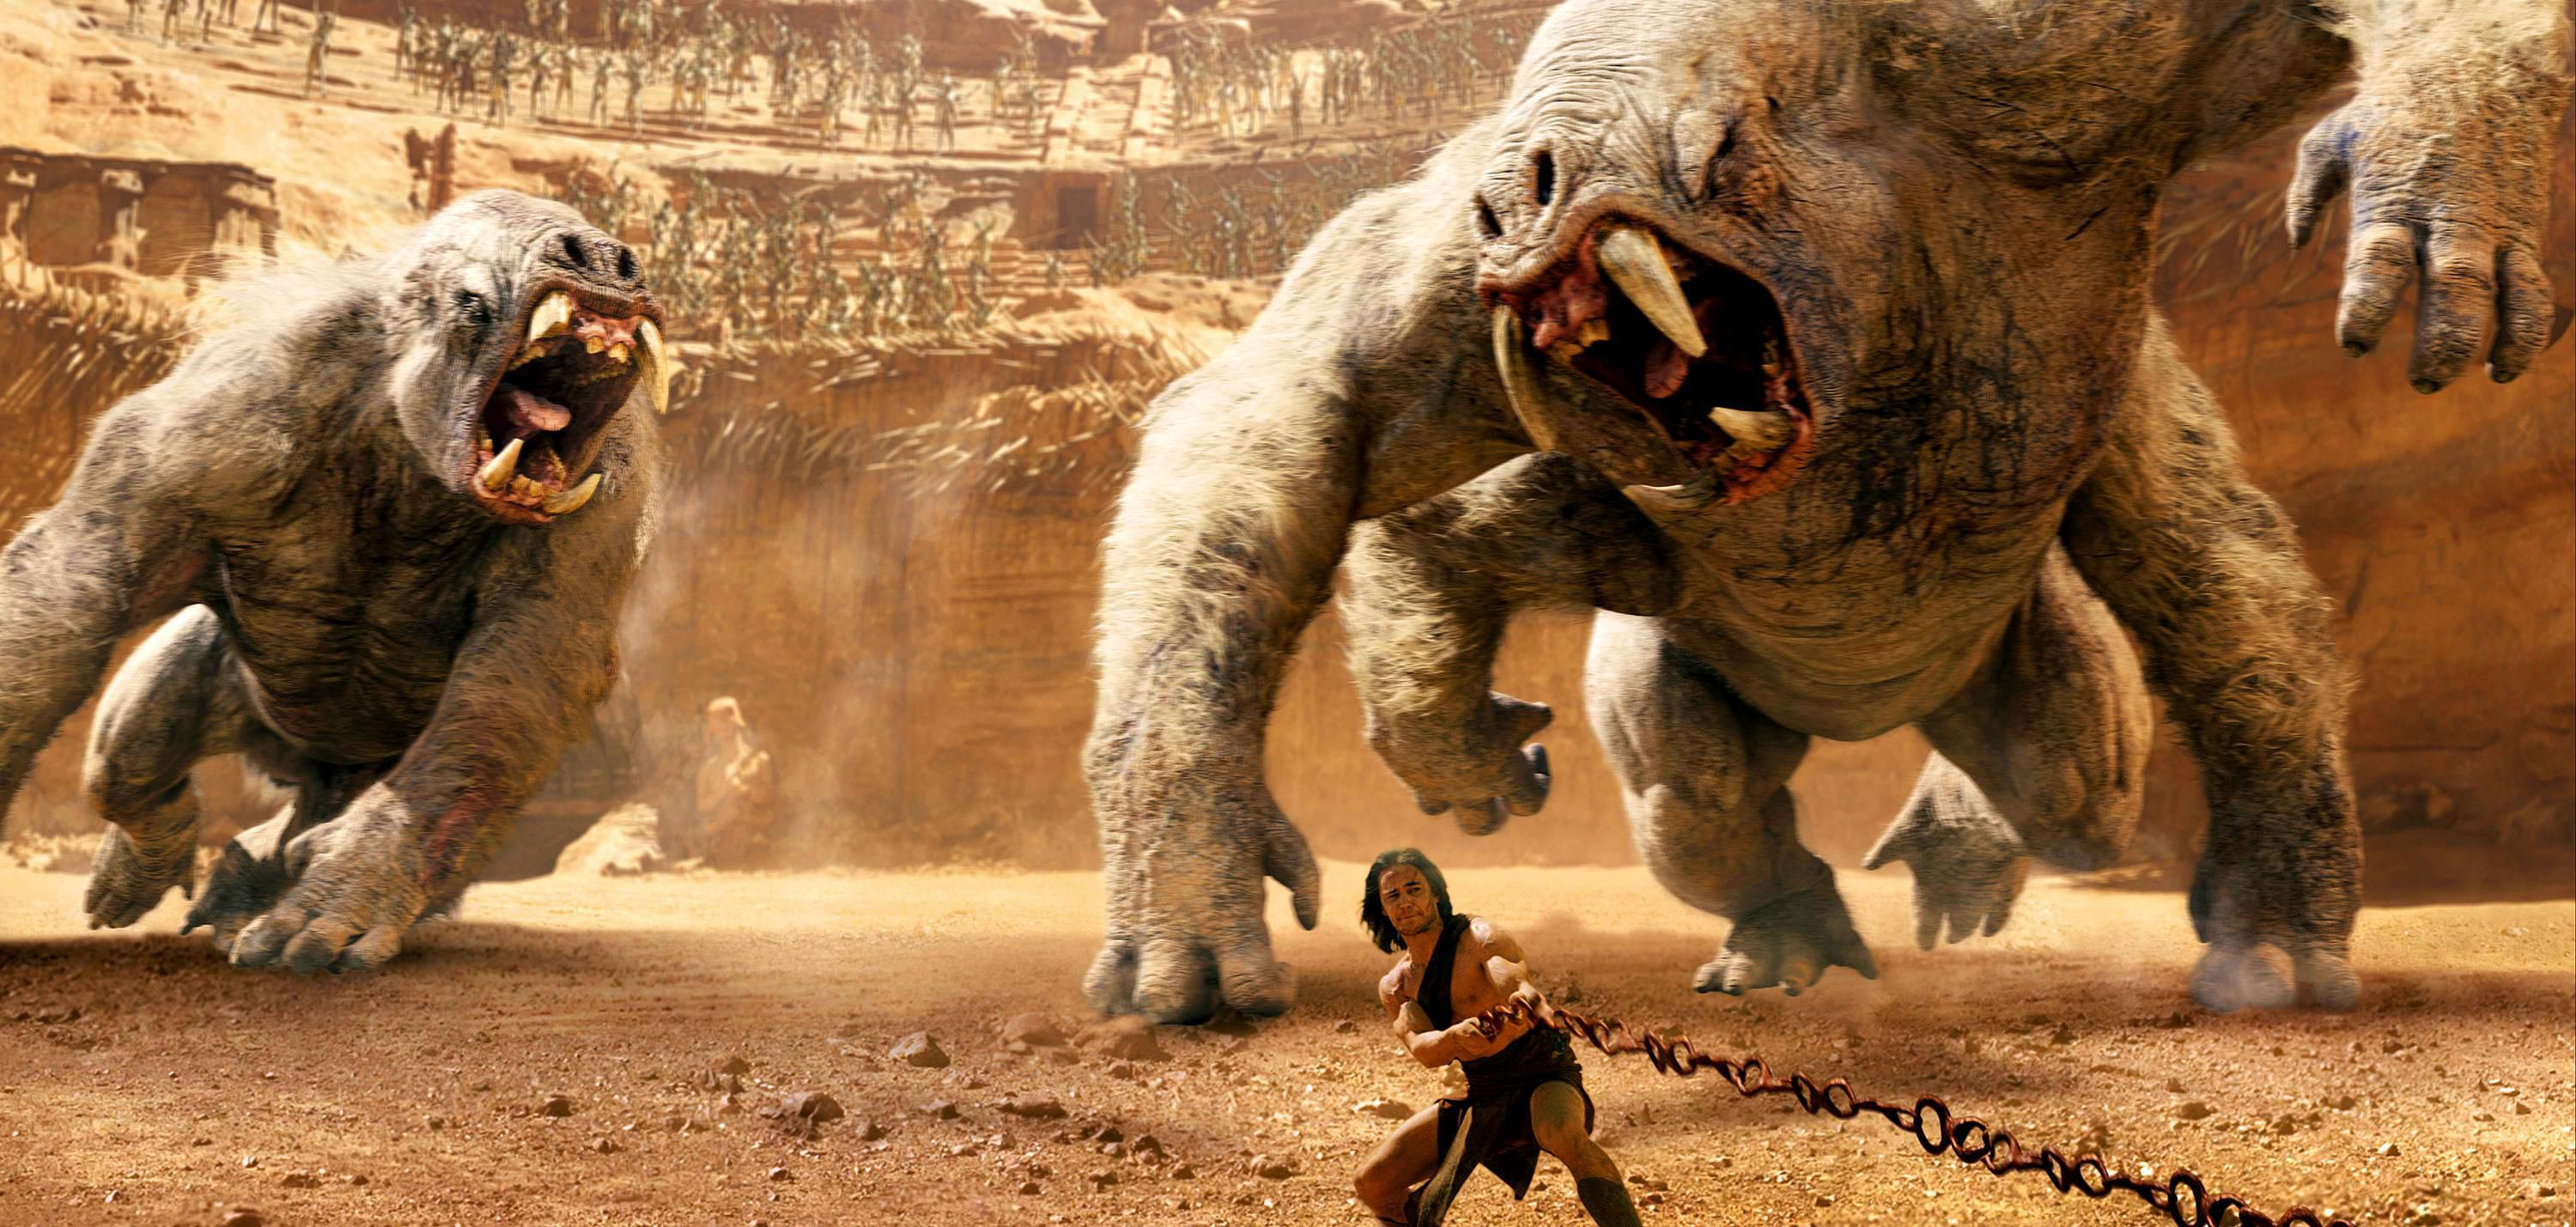 An image from John Carter